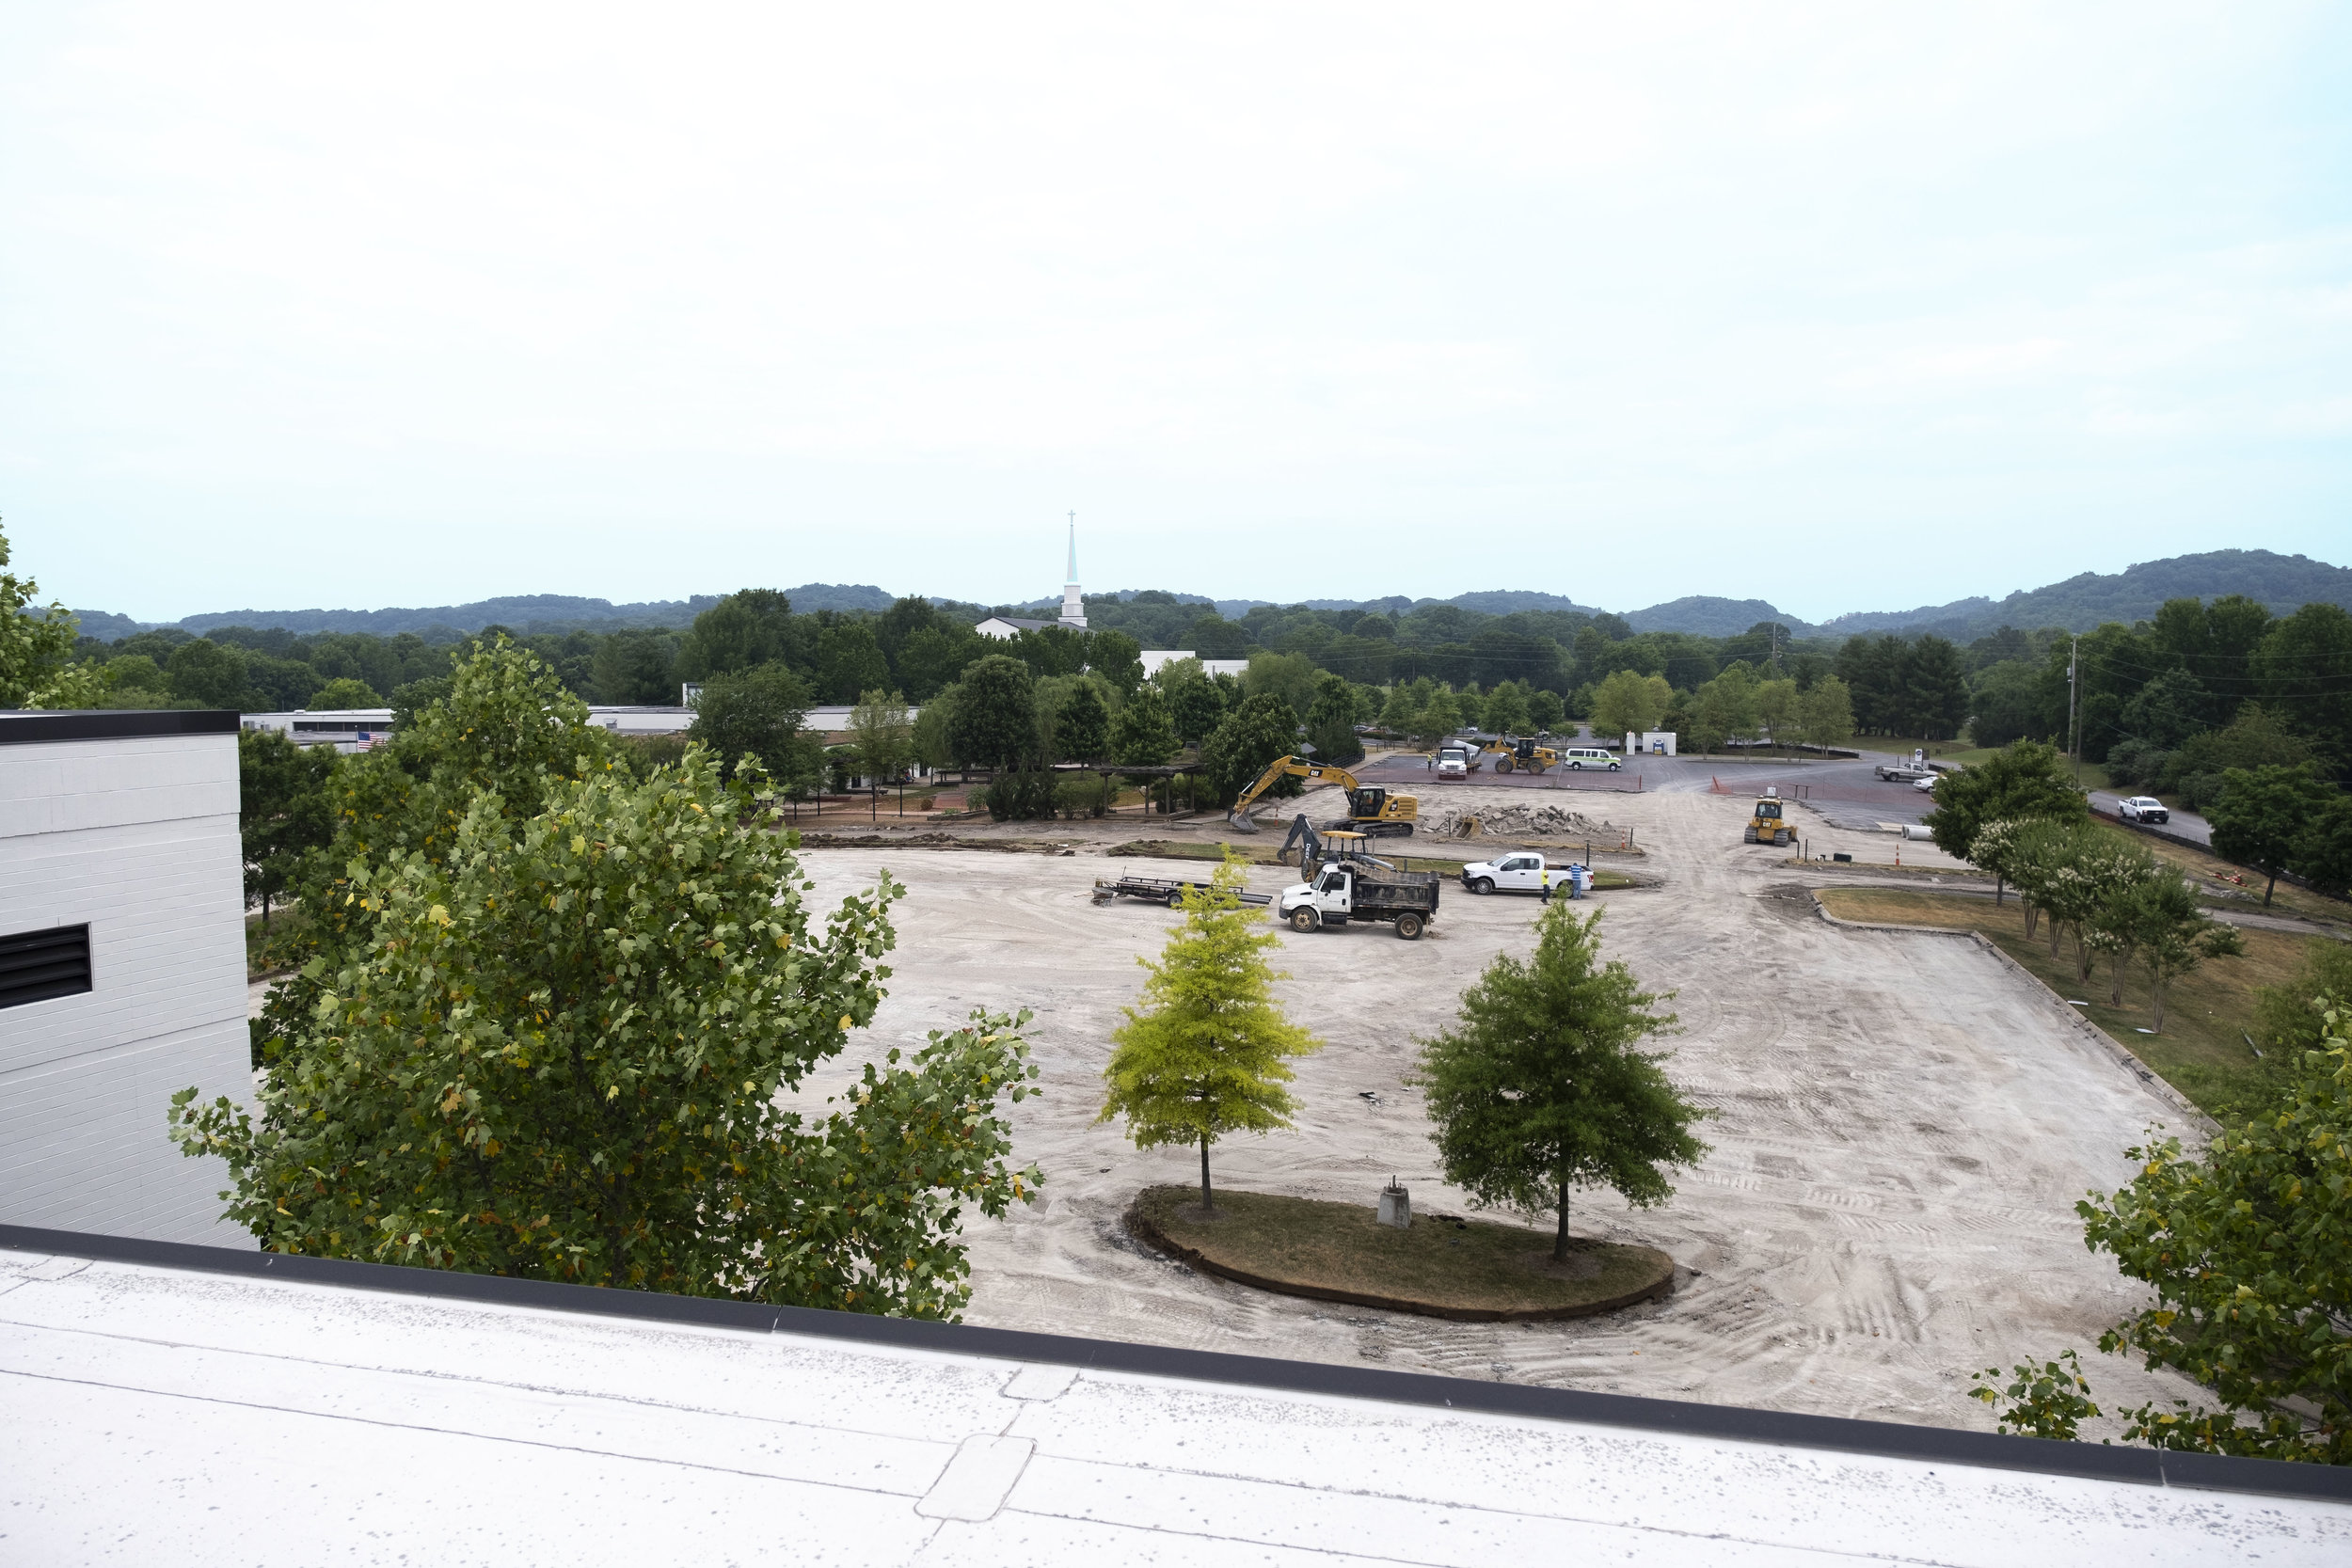 View is from the Academy, looking north toward the church and Old Hickory Blvd.